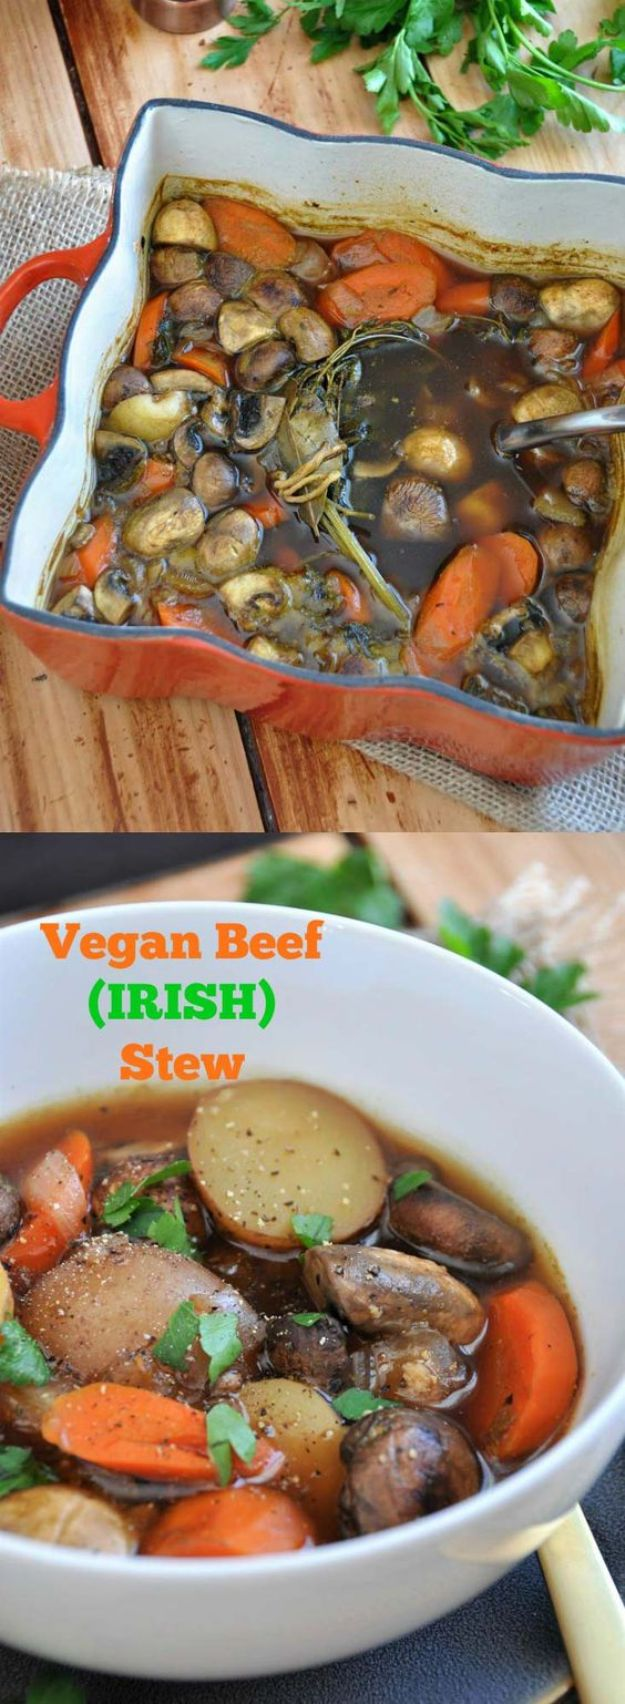 St Patrick's Day Food and Recipe Ideas - Vegan Beef Irish Stew - DIY St. Patrick's Day Party Recipes for Dinner, Desserts, Cookies, Cakes, Snacks, Dips and Drinks - Green Shamrocks, Leprechauns and Cute Party Foods - Easy Appetizers and Healthy Treats for Adults and Kids To Make - Potluck, Crockpot, Traditional and Corned Beef http://diyjoy.com/st-patricks-day-recipes